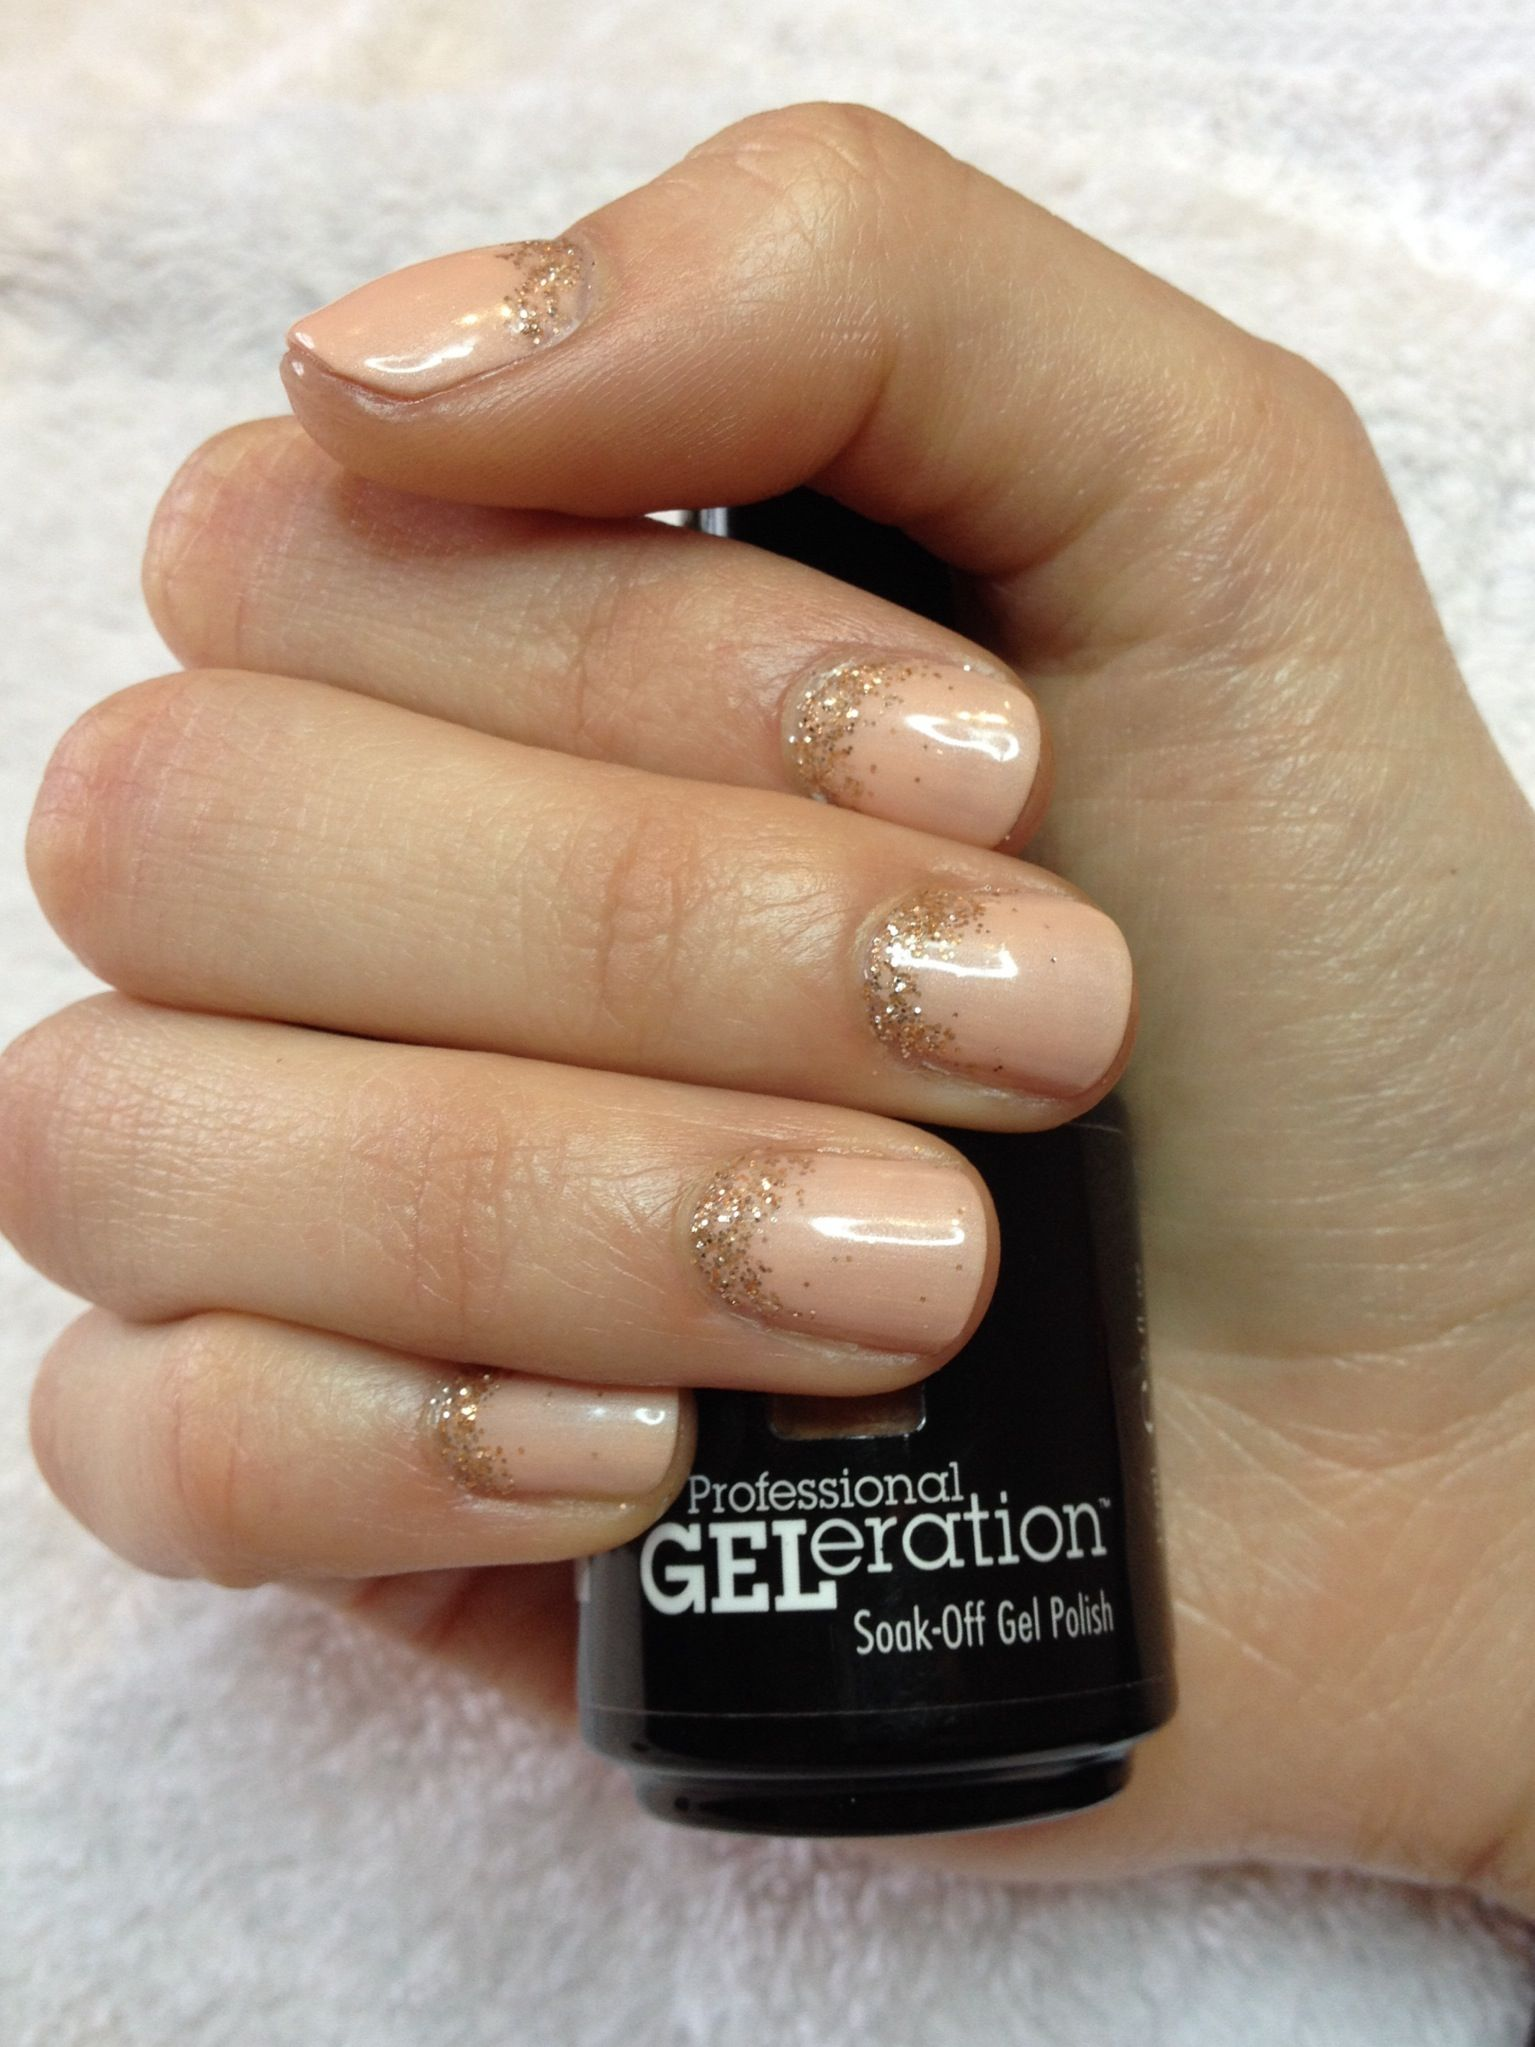 Jessica GELeration gel in Peaches \'n\' Creme with a little extra ...